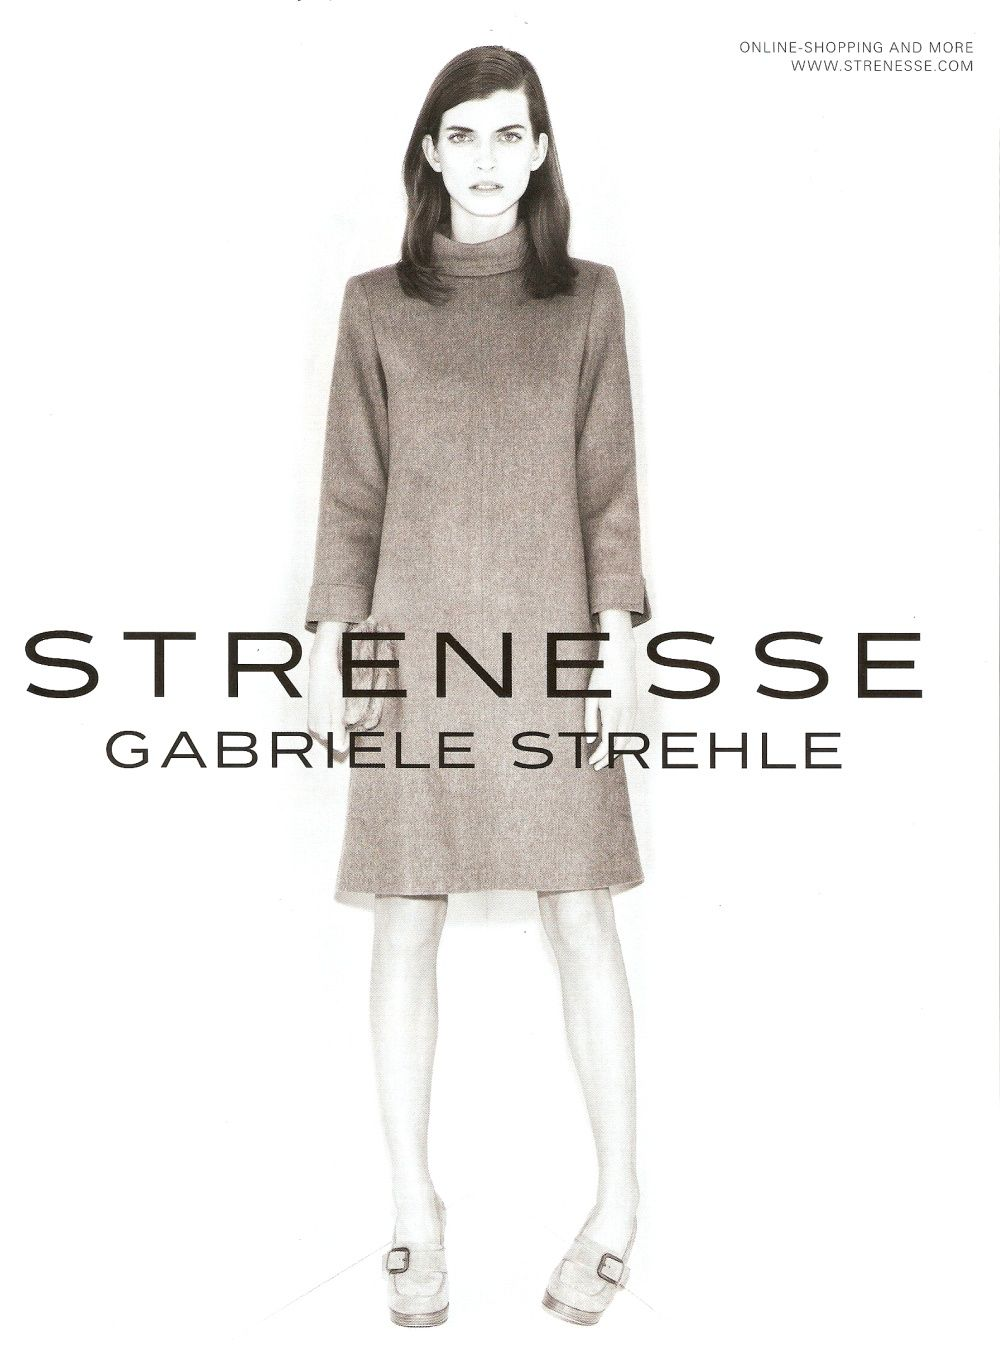 strenesse gabriele strehle fall winter 2011 ad campaign preview art8amby 39 s blog. Black Bedroom Furniture Sets. Home Design Ideas